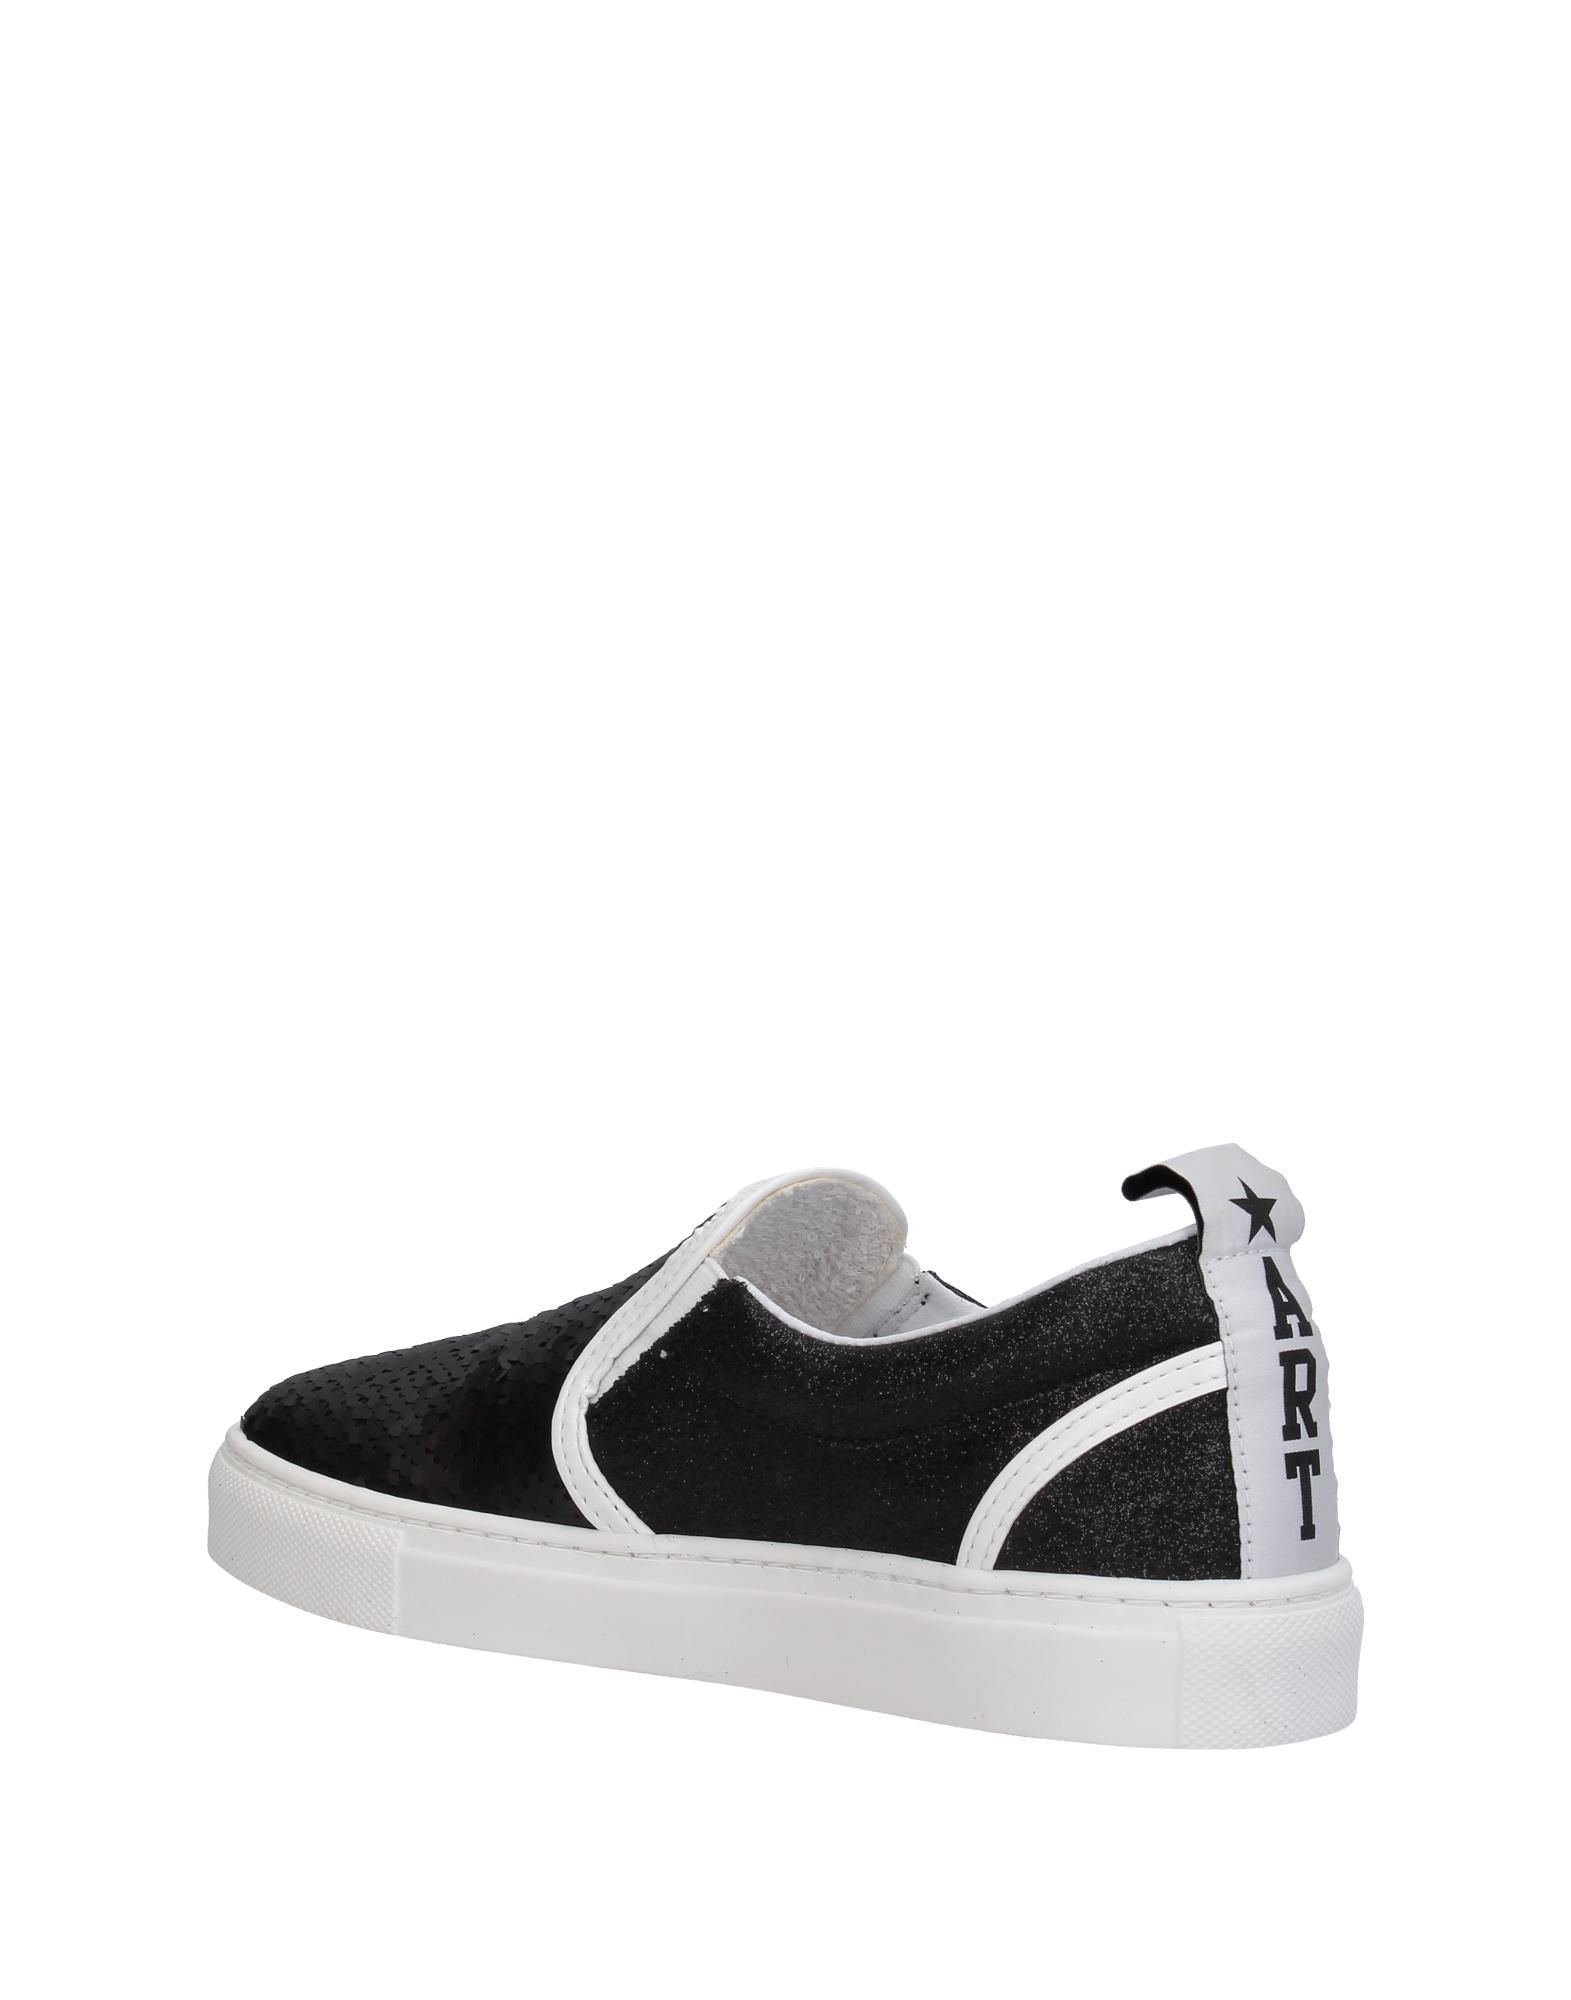 Shop ★ 11361332CC Art Sneakers Damen  11361332CC ★  49622f